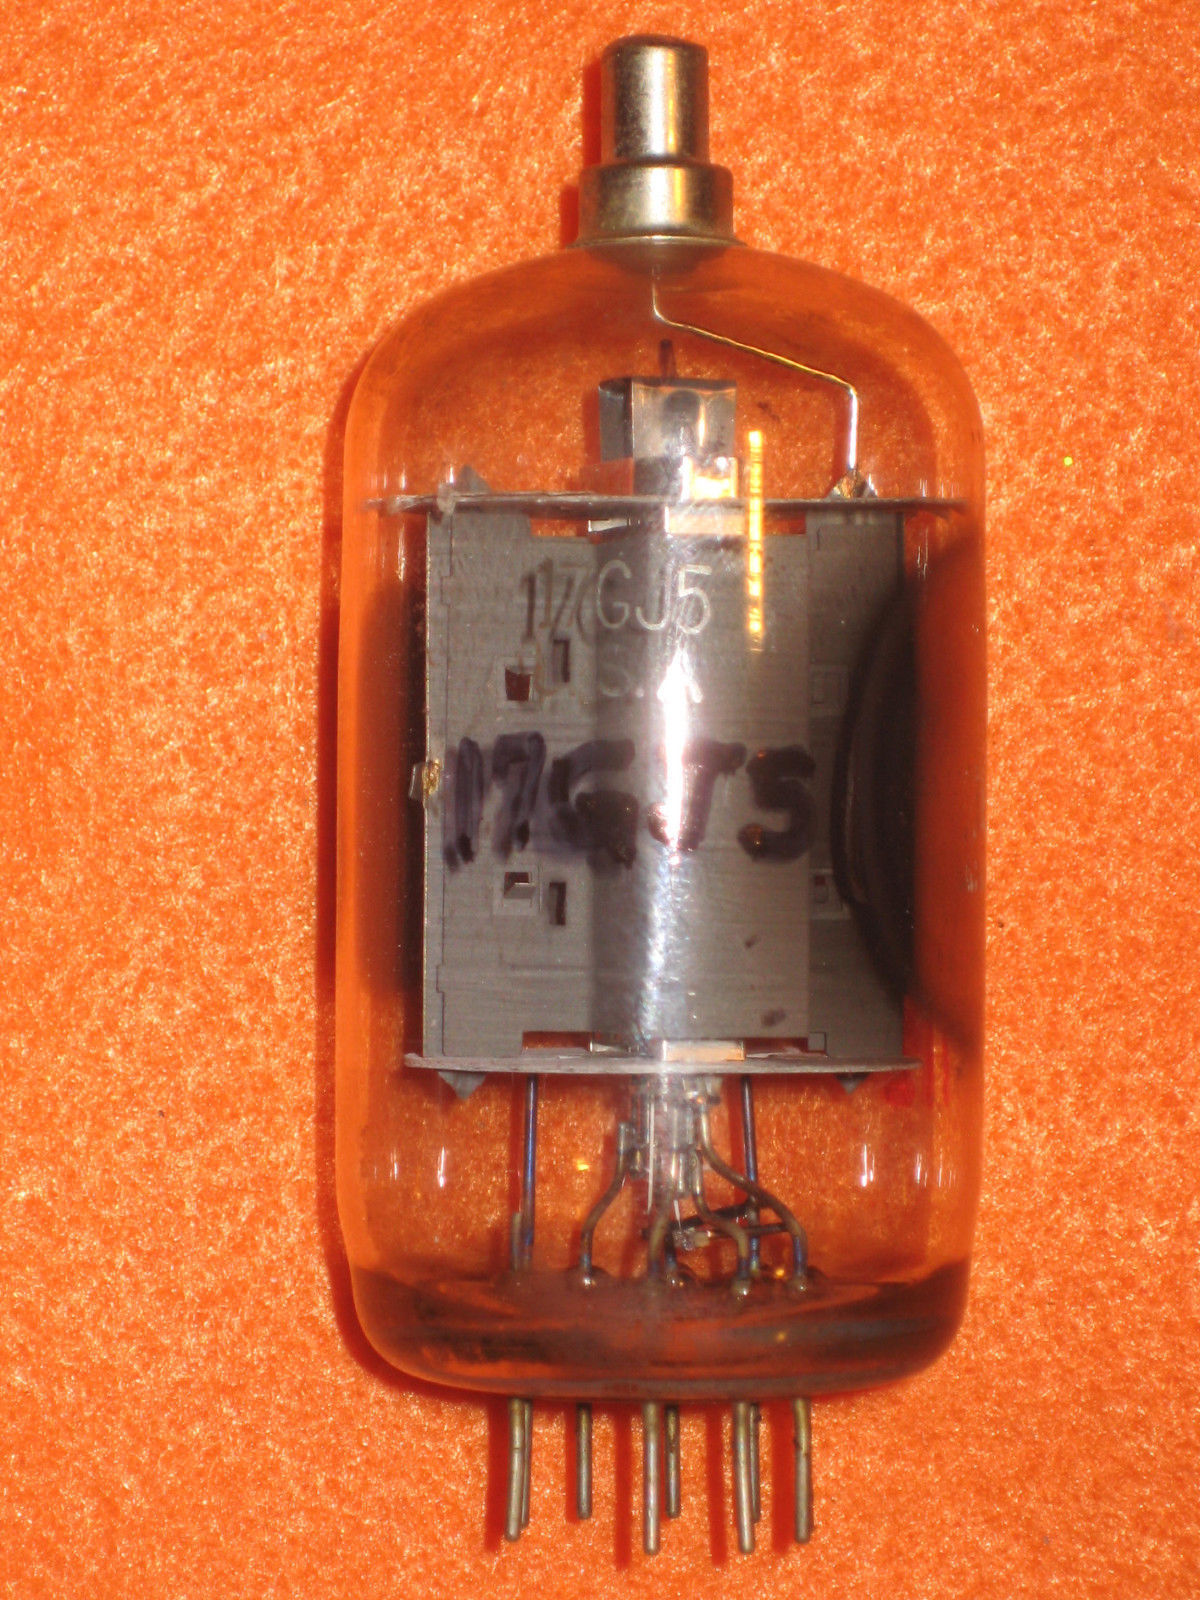 Vintage Radio Vacuum Tube (one): 17GJ5 - Tested Good